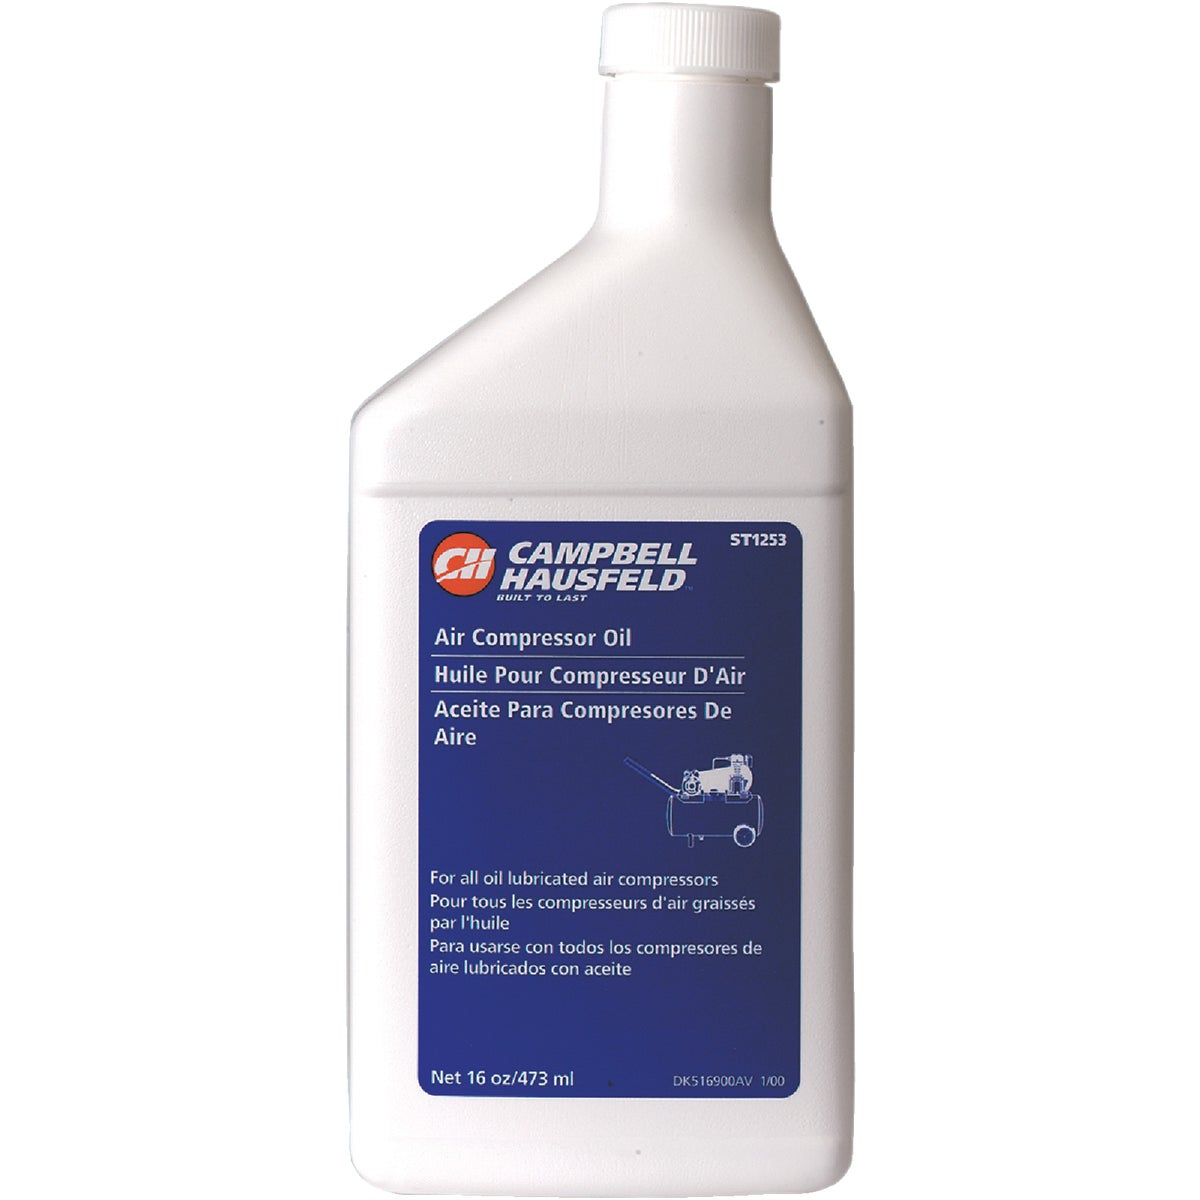 16OZ AIR COMPRESSOR OIL - ST1253 by Campbell Hausfeld Co